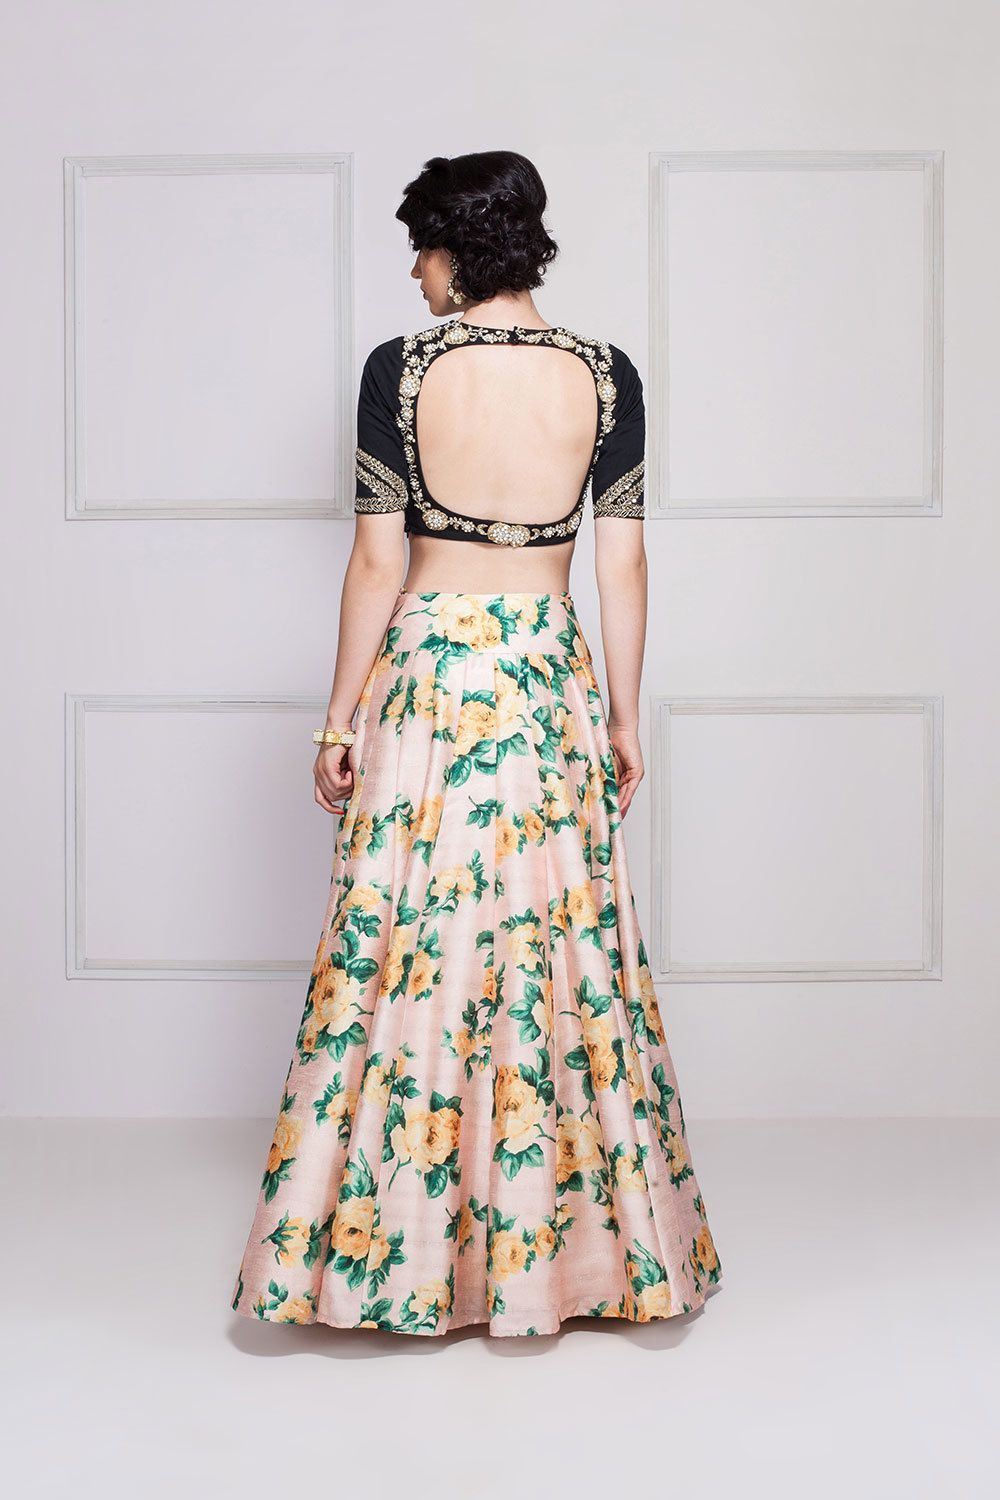 Sonali gupta black u peach floral lehenga set with dabka